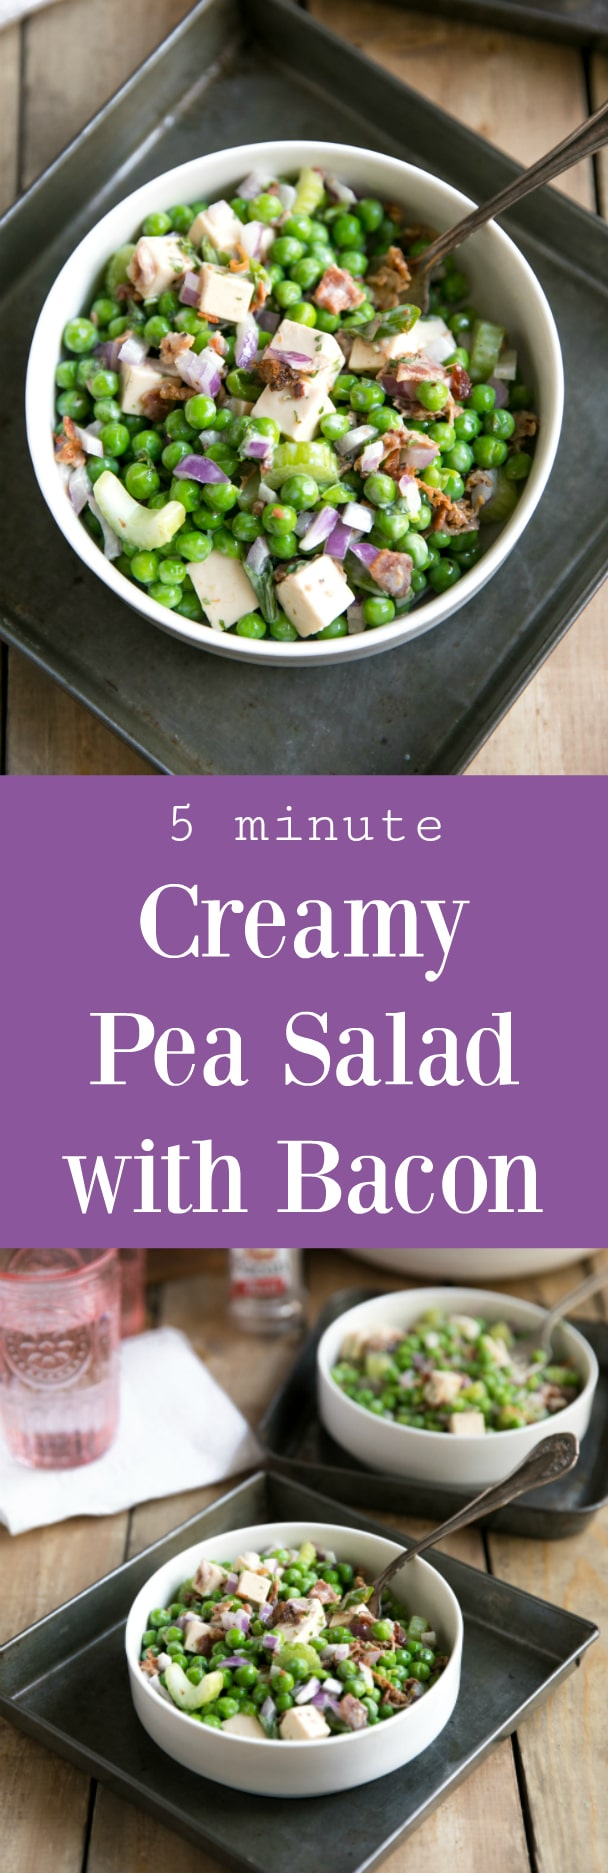 Easy Pea Salad with Bacon (+VIDEO). The perfect no-bake, fast, easy, and delicious side dish for any holiday party or summer BBQ, this Easy and Creamy Pea Salad is filled with cubes of smoked gouda, crunchy celery and plenty of bacon! via @theforkedspoon #ad #peasalad #easyrecipe #fastrecipe #picnicrecipe #goudacheese #bacon